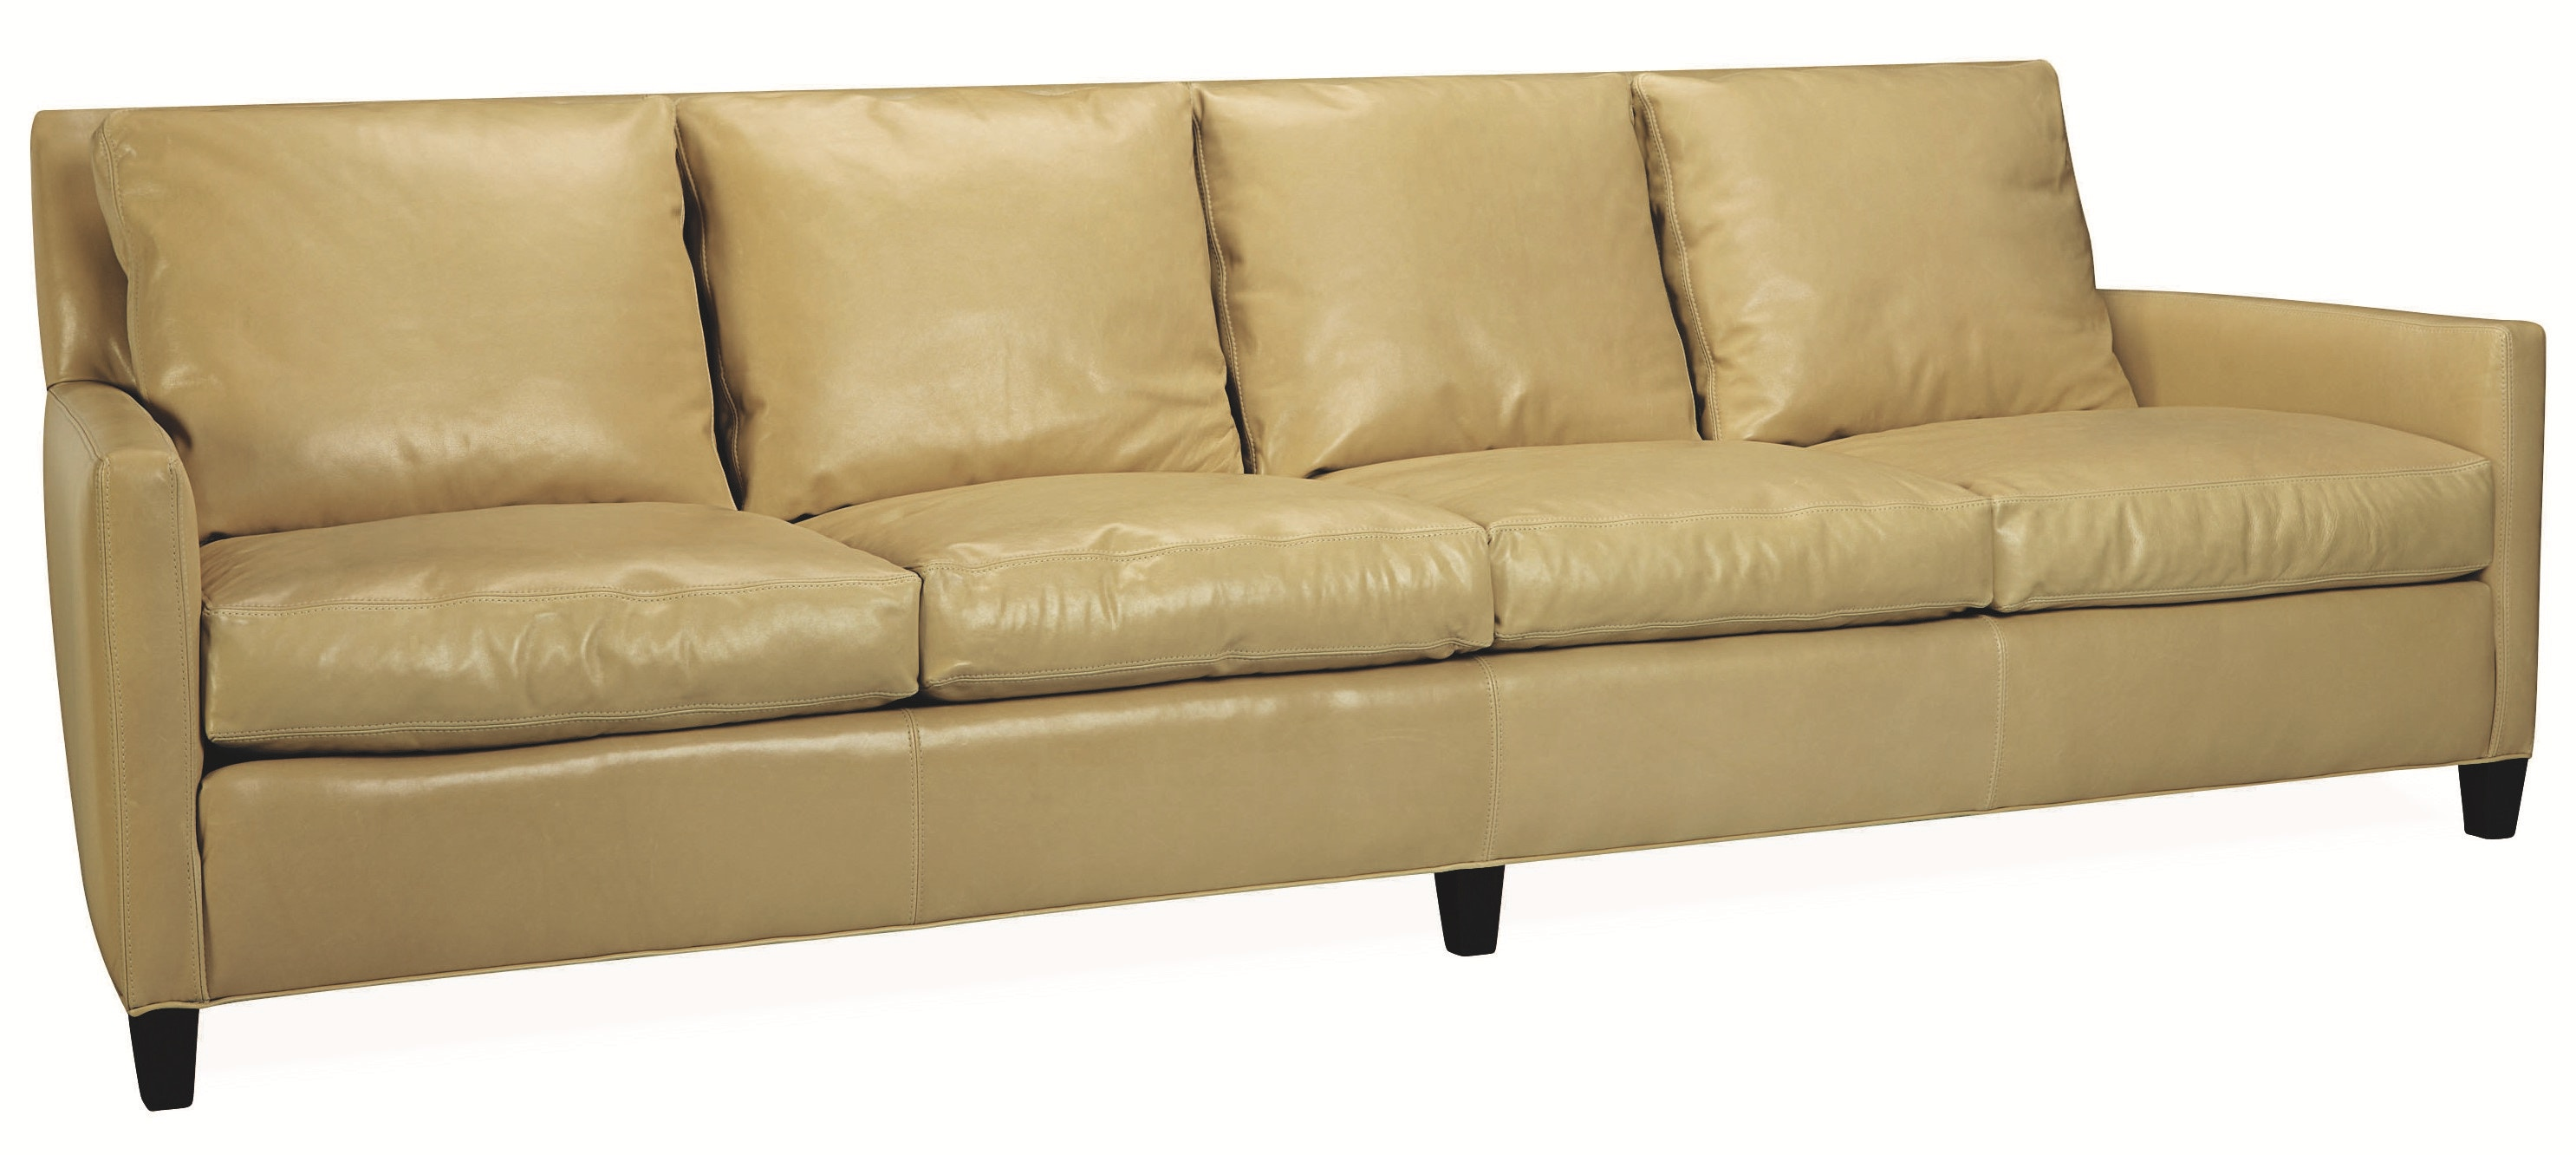 long sofas leather stretch sofa slipcovers canada lee industries living room extra l1296